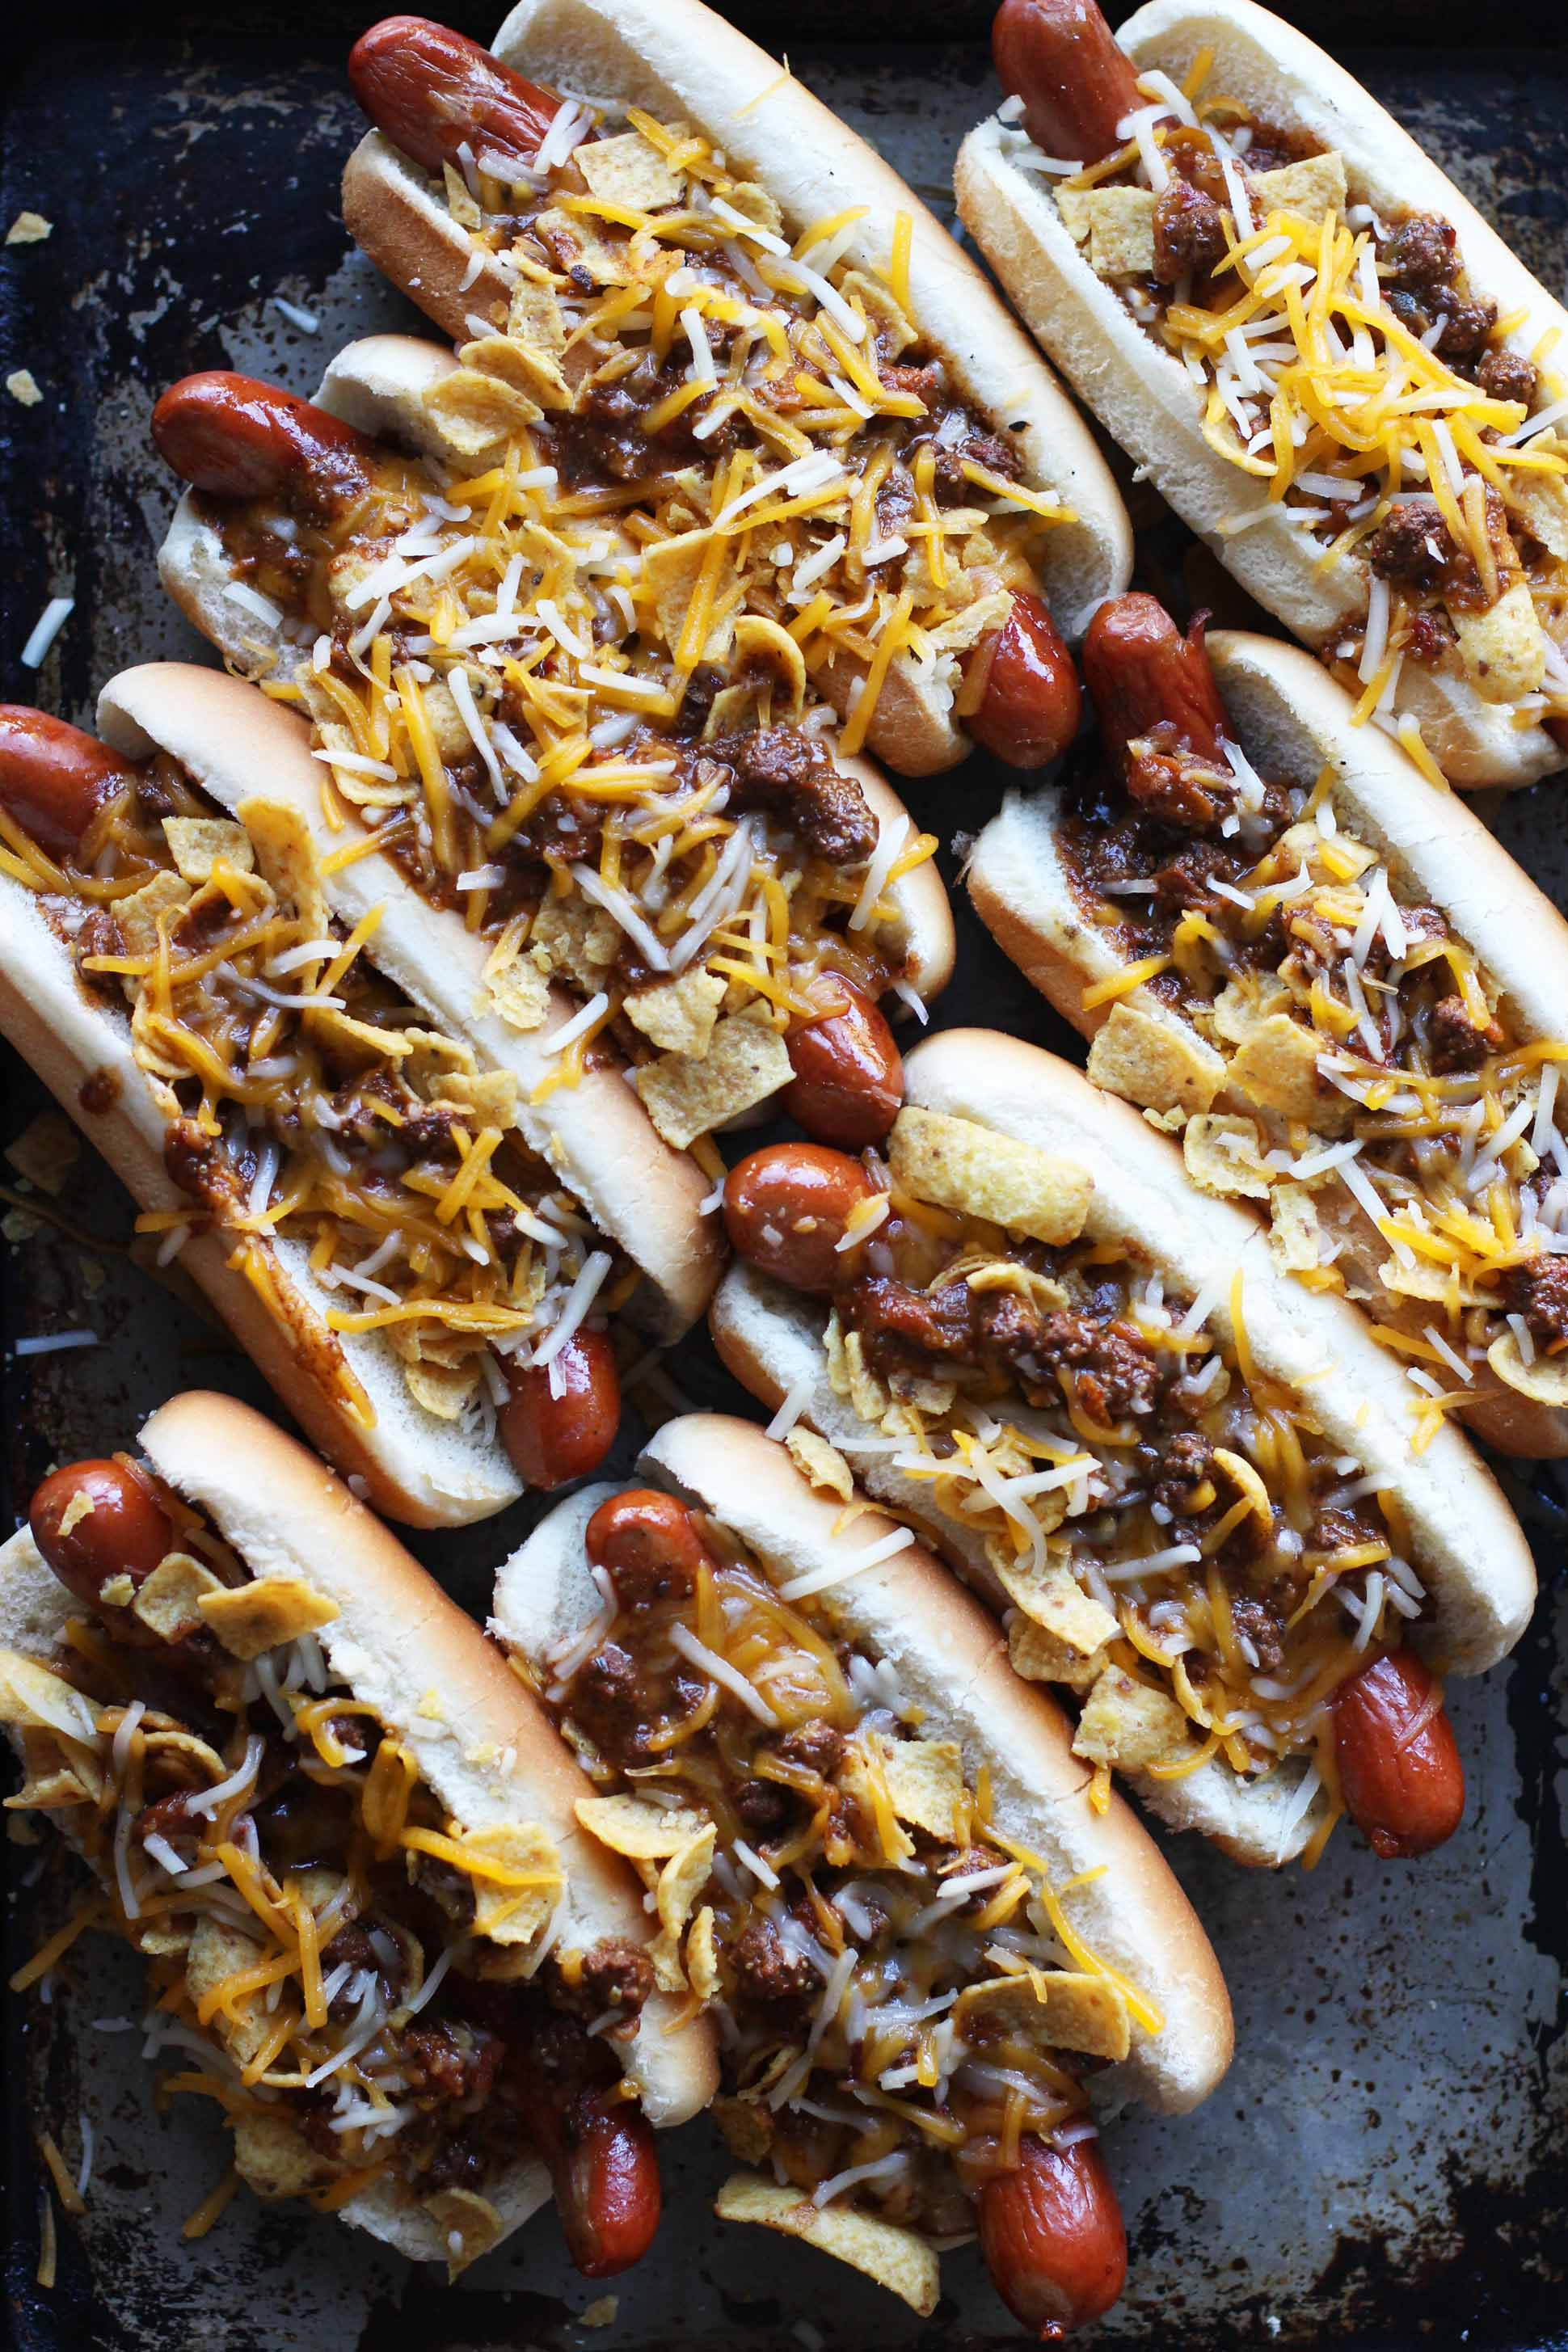 How To Make The Best Grilled Hot Dogs